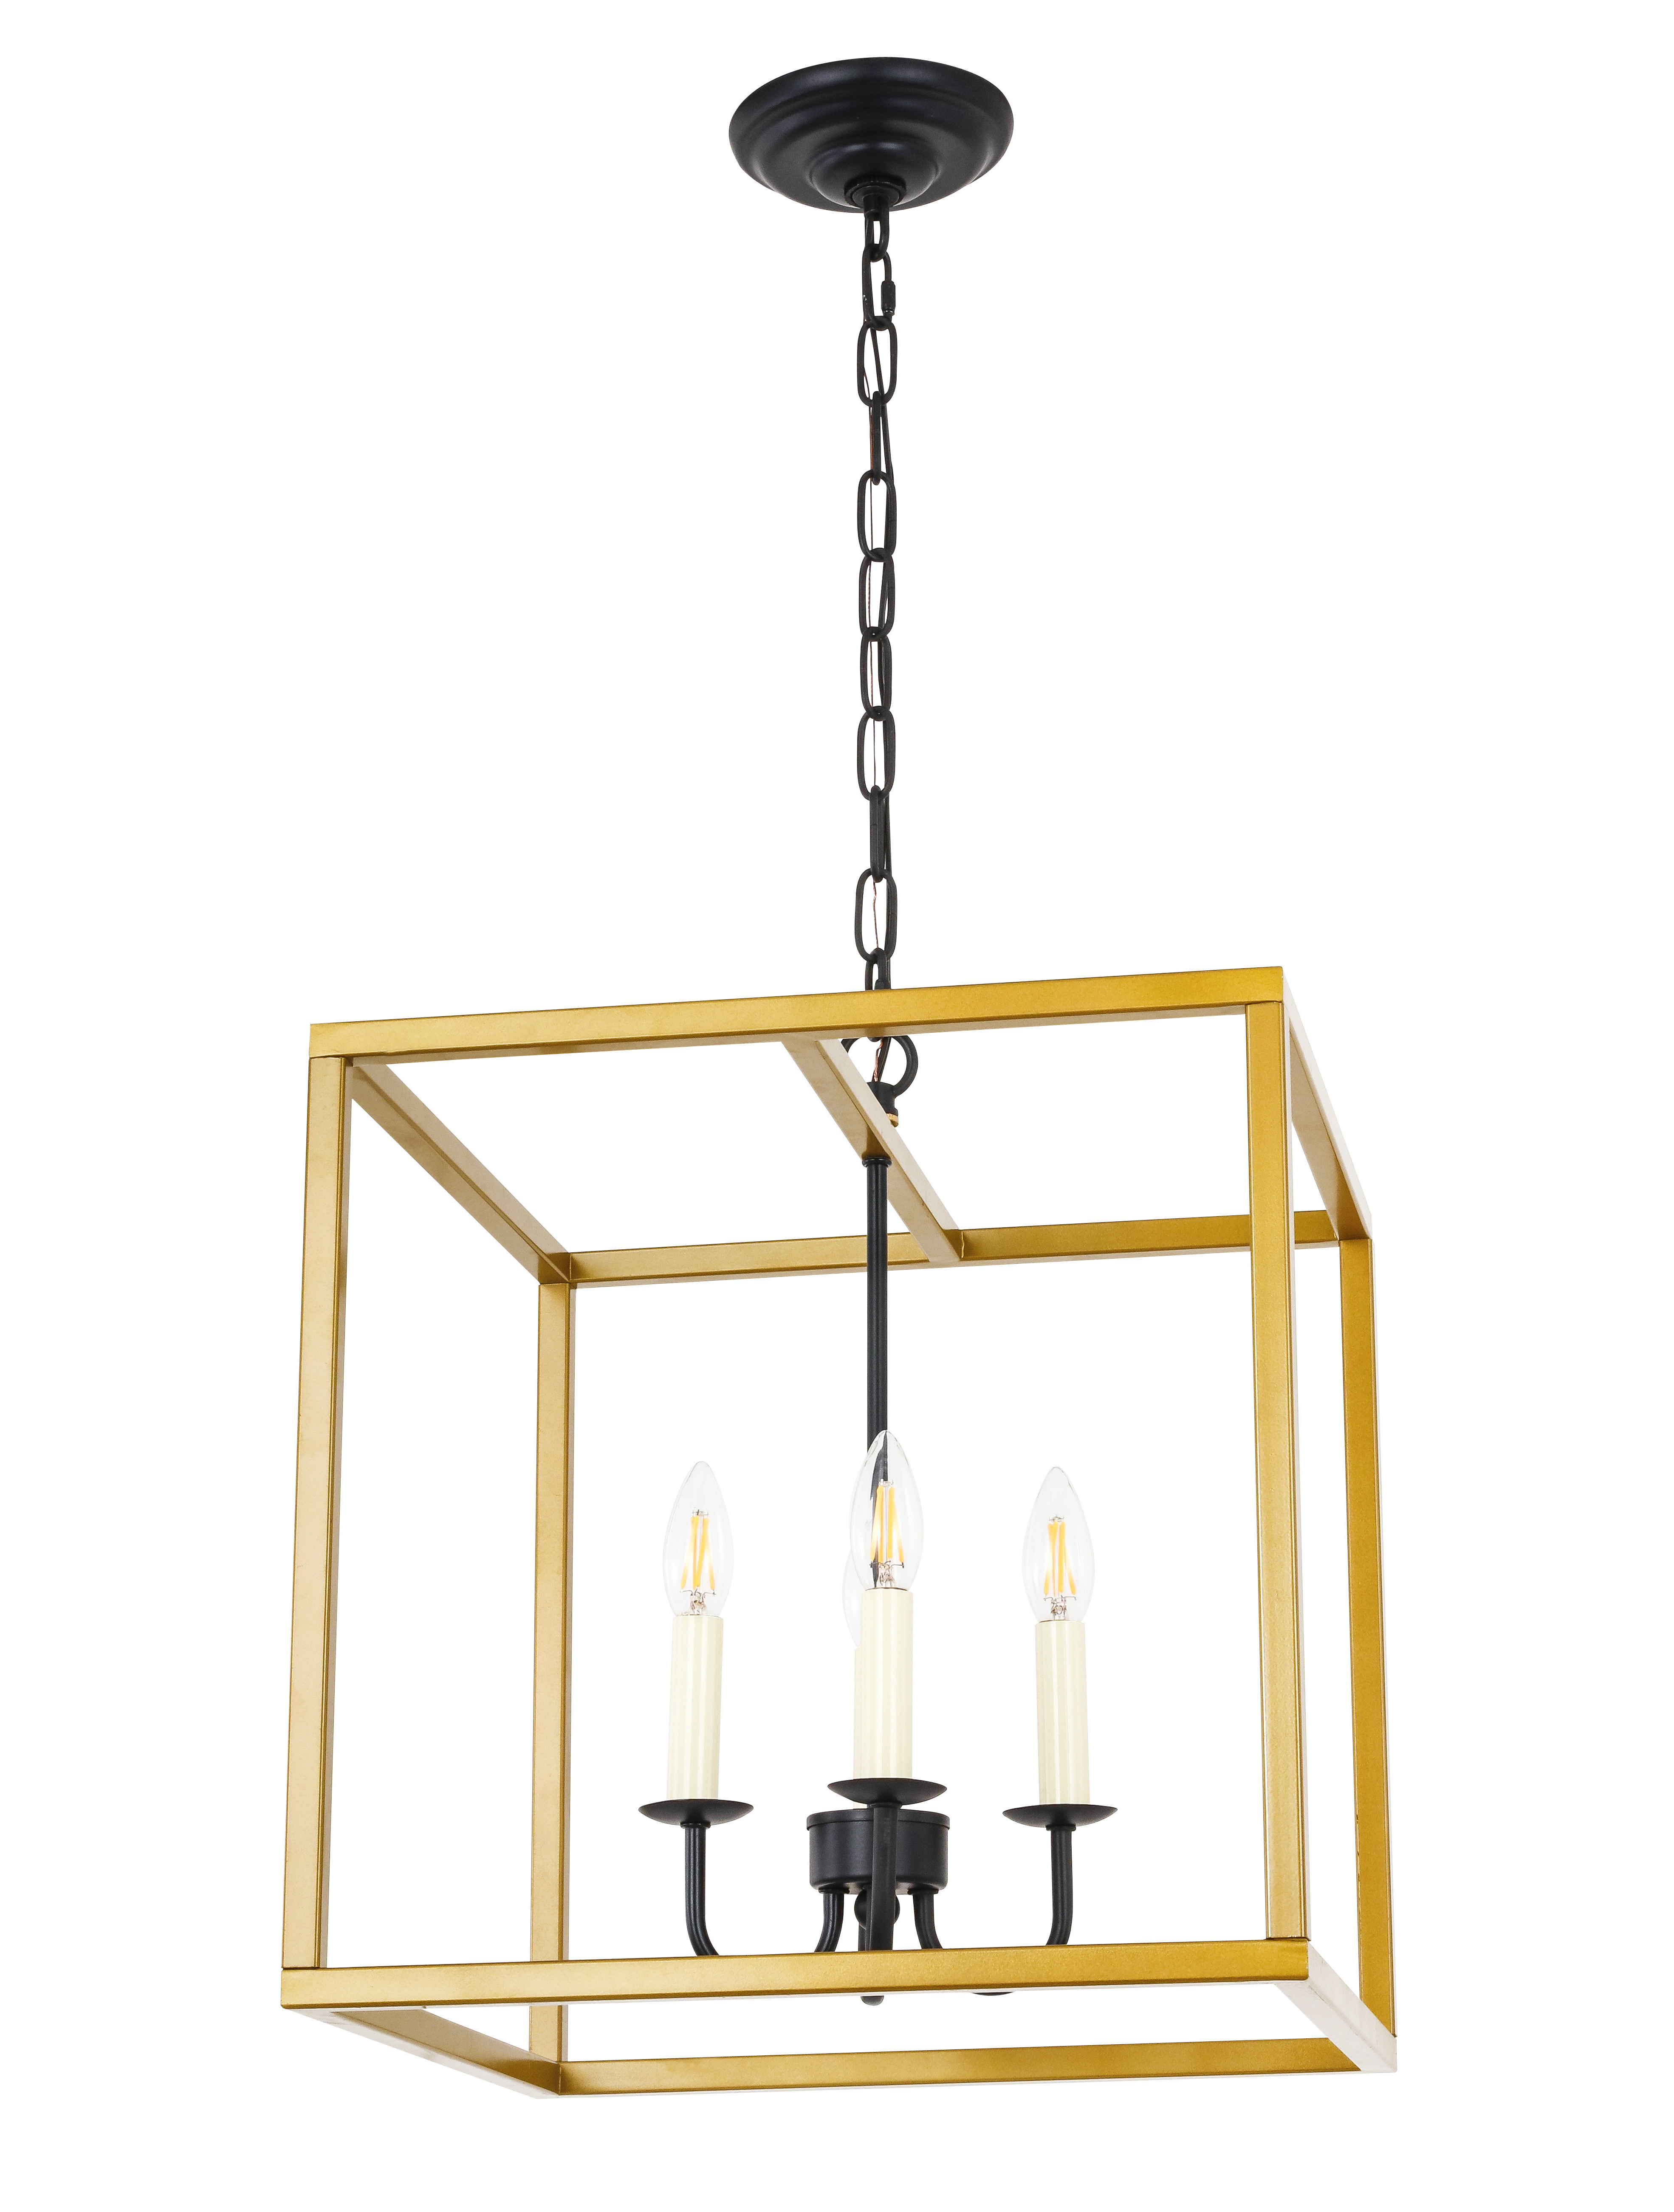 Preferred Tiana 4 Light Geometric Chandeliers With Tankersley 4 Light Square Chandelier (View 8 of 20)